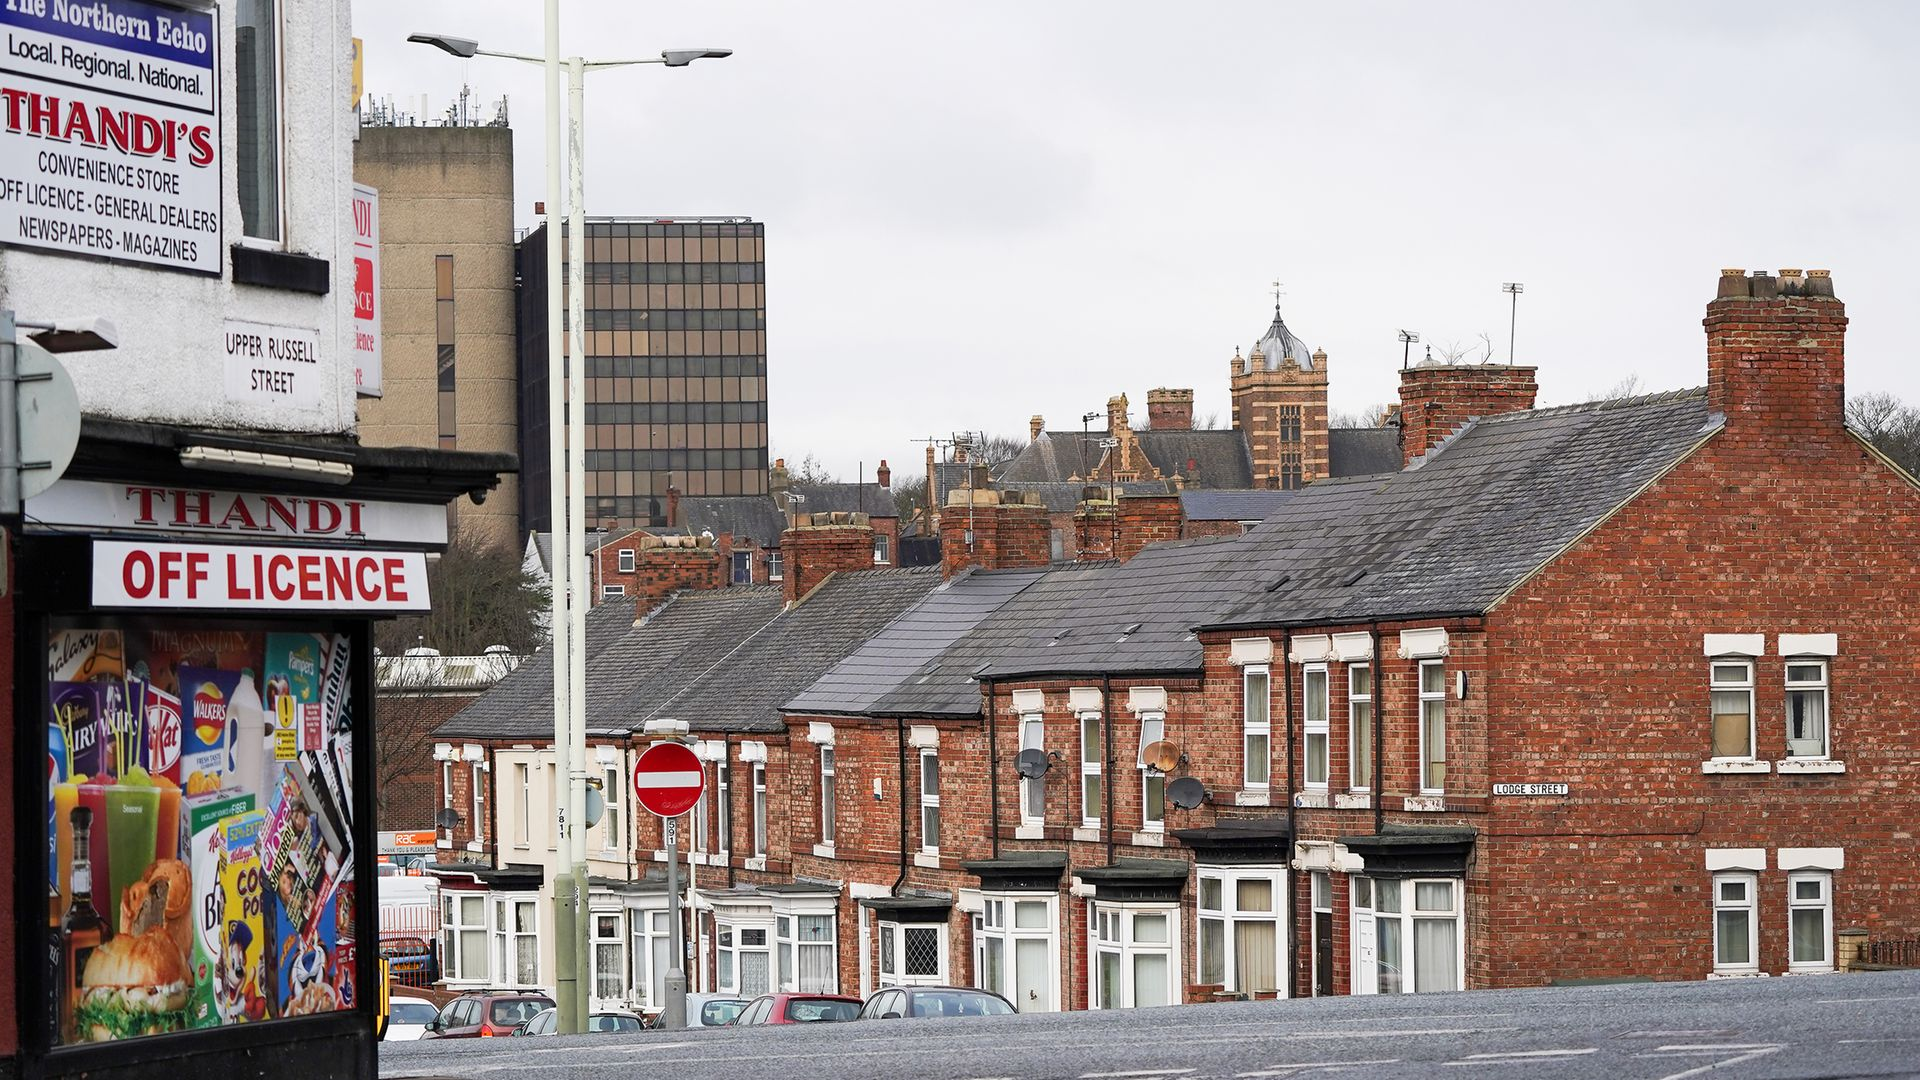 Not on the level: a hill in Darlington, where the Treasury is opening a new site as part of the government's 'levelling-up' agenda - Credit: Getty Images